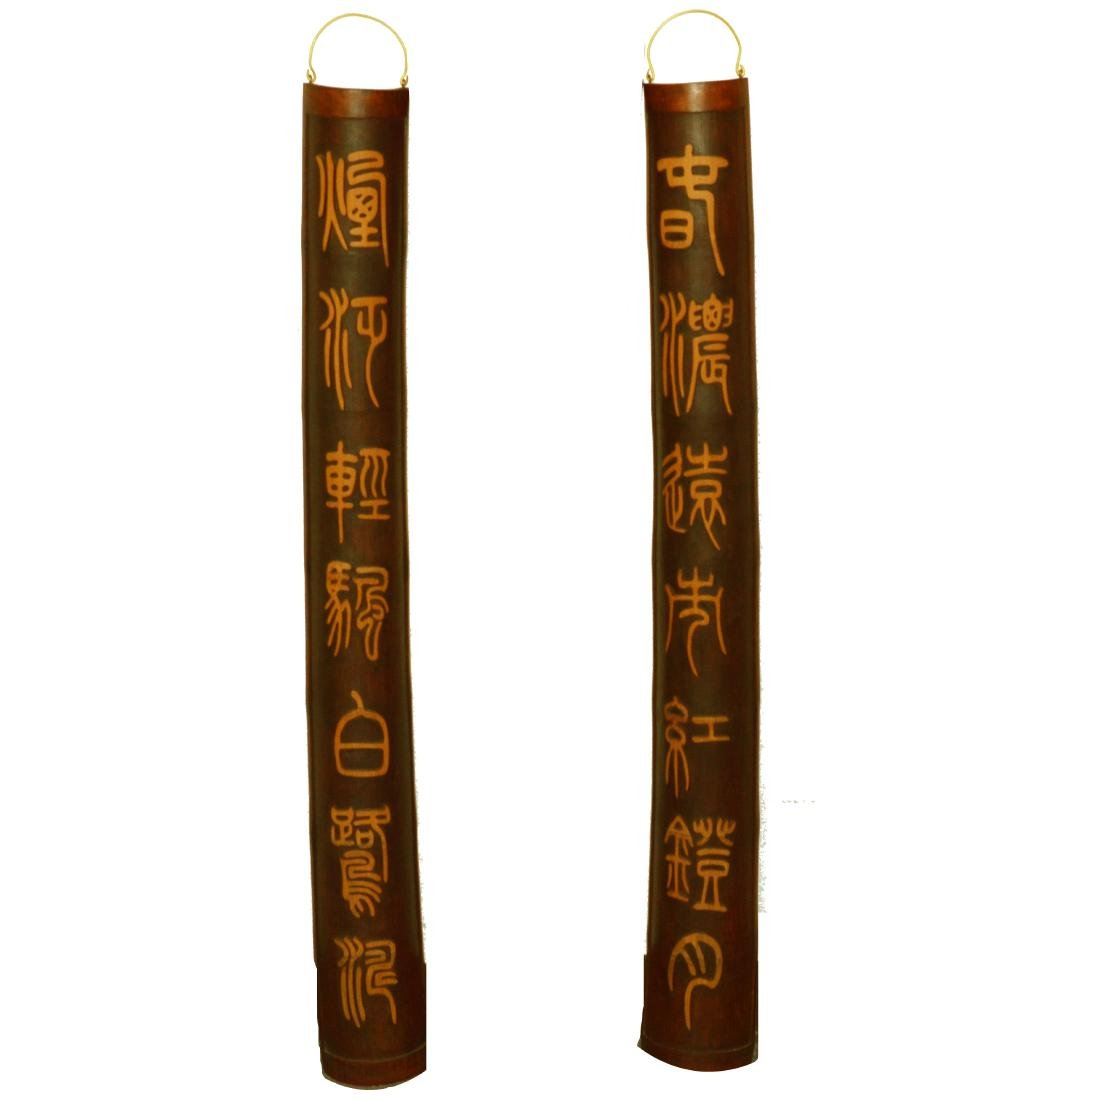 Bamboo Carving Couplet